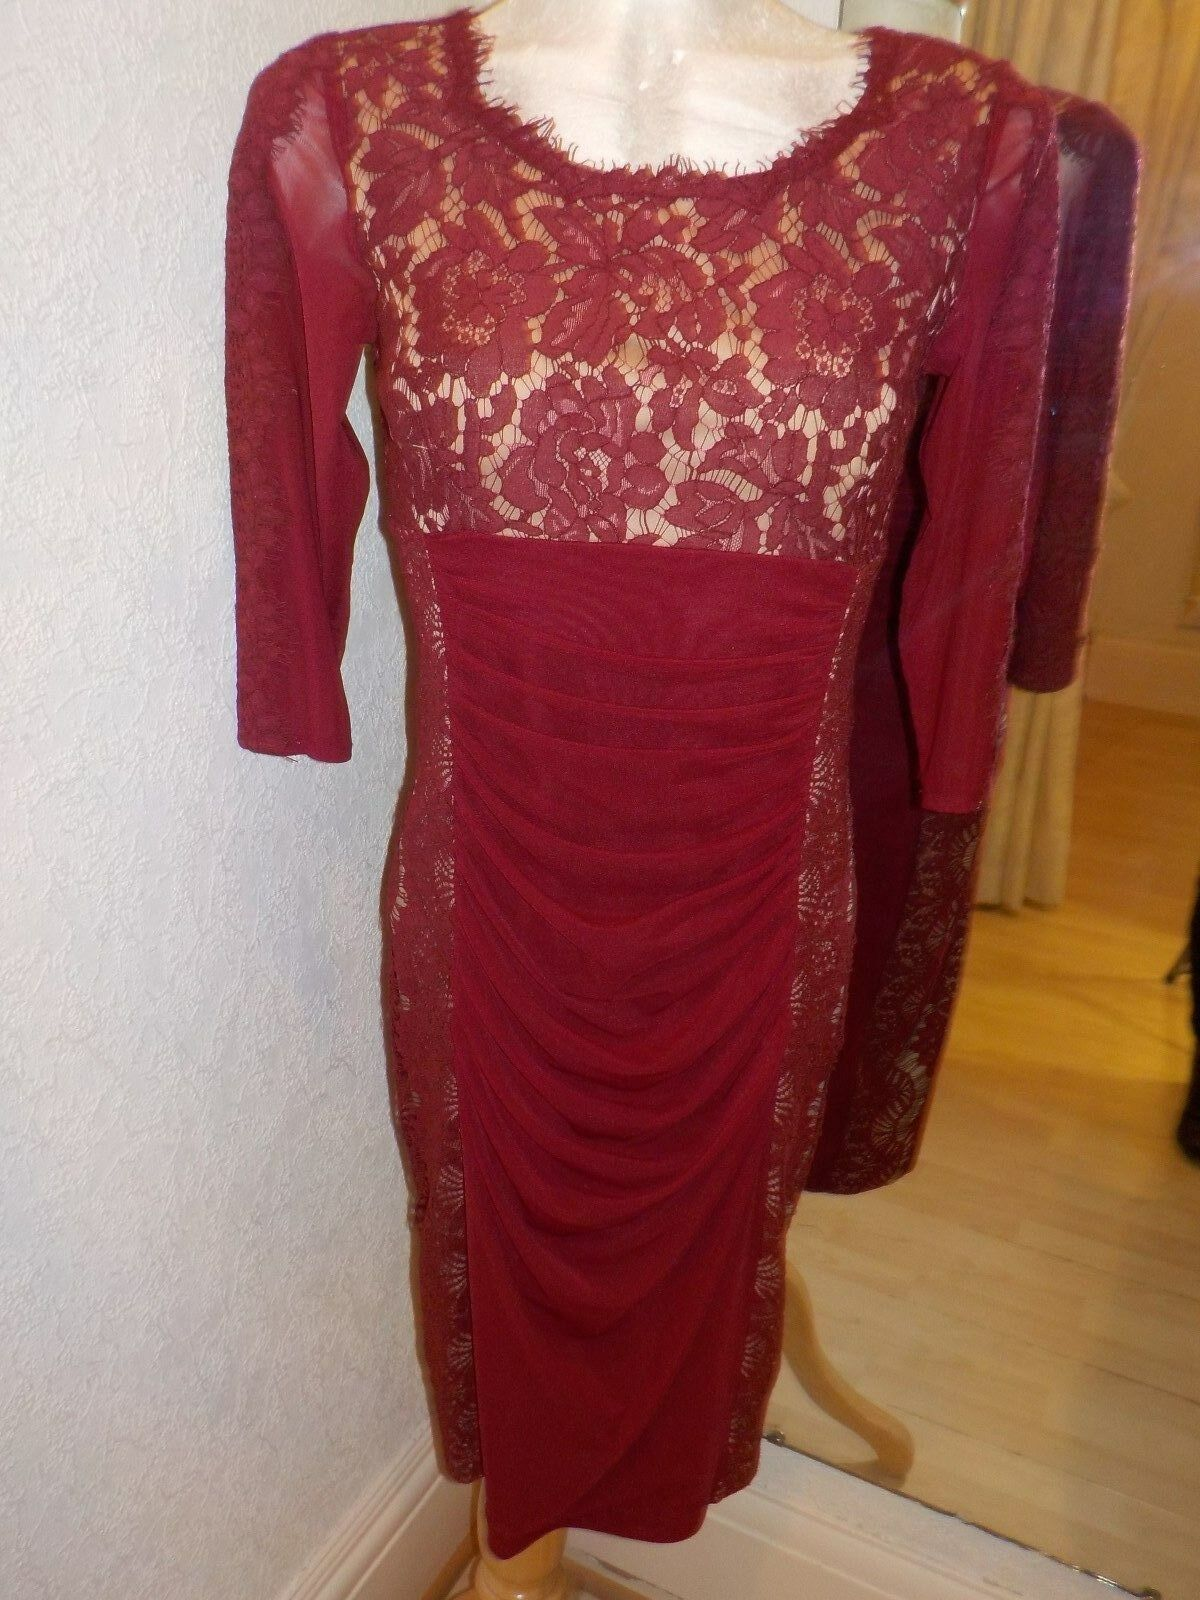 Tia Burgundy Red Lace Dress 78740 Size 14